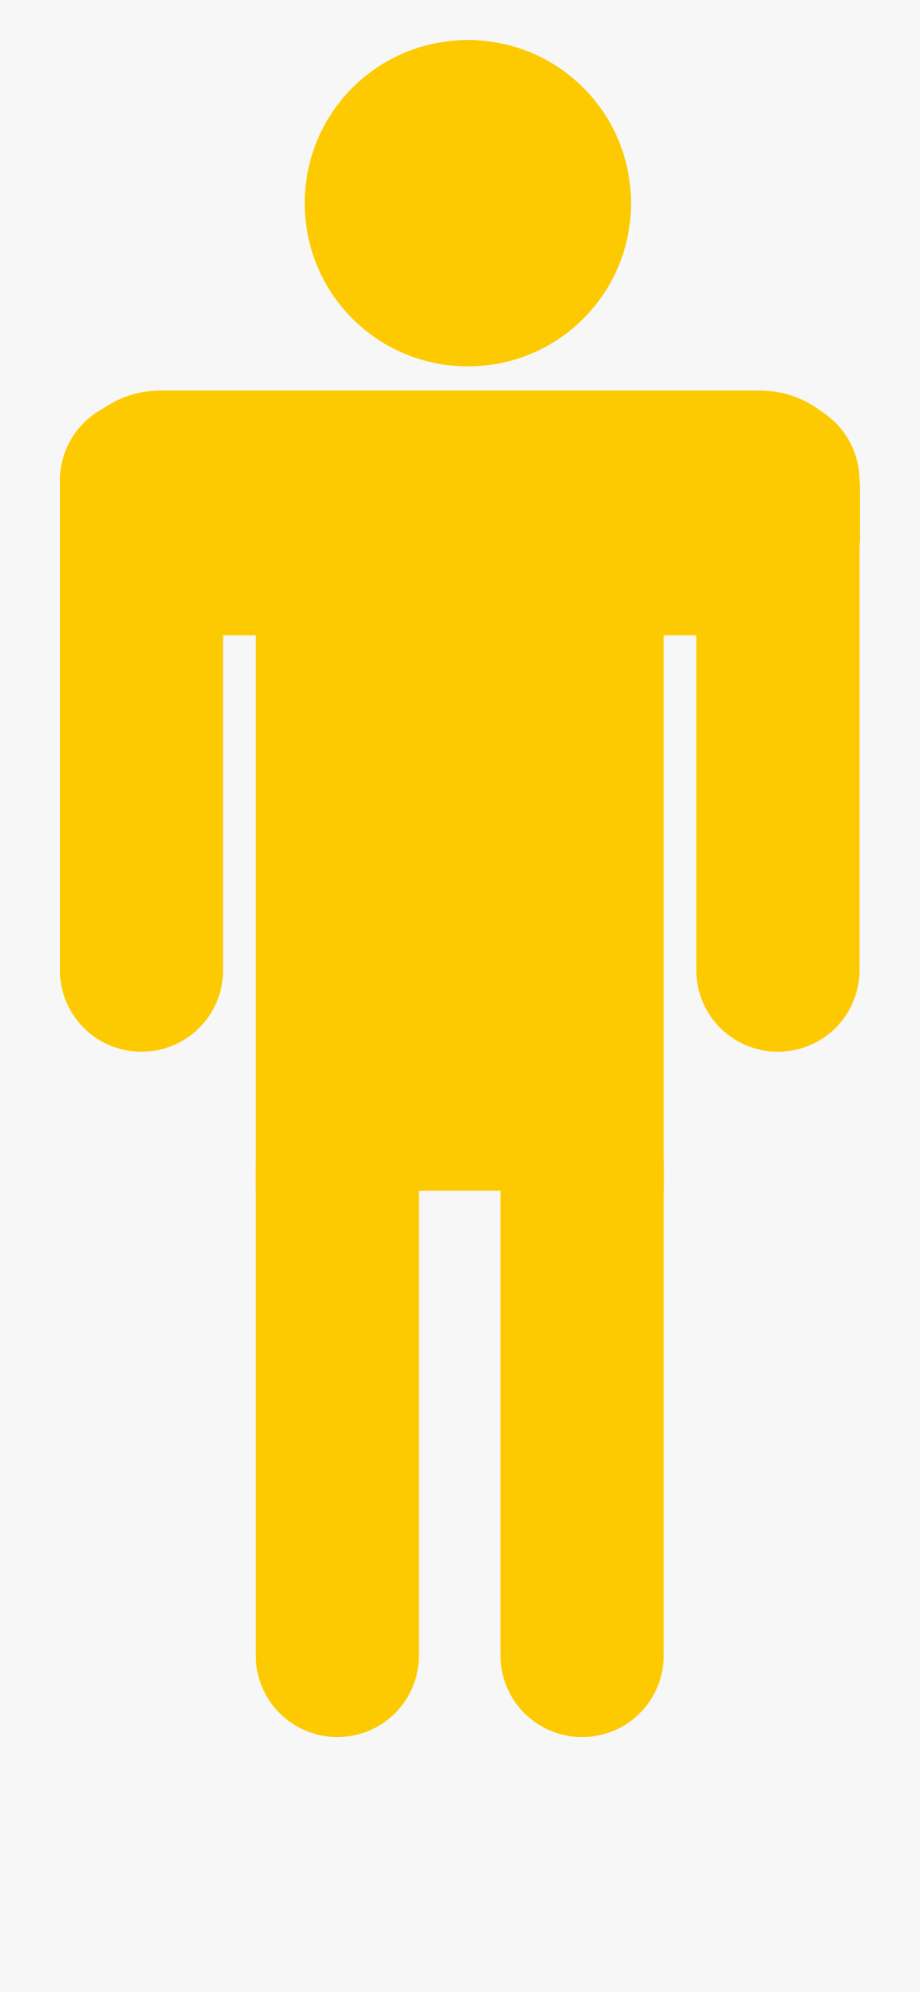 Yellow stick figure clipart clipart library download Clipart People Simple - Yellow Stick Figure Transparent ... clipart library download